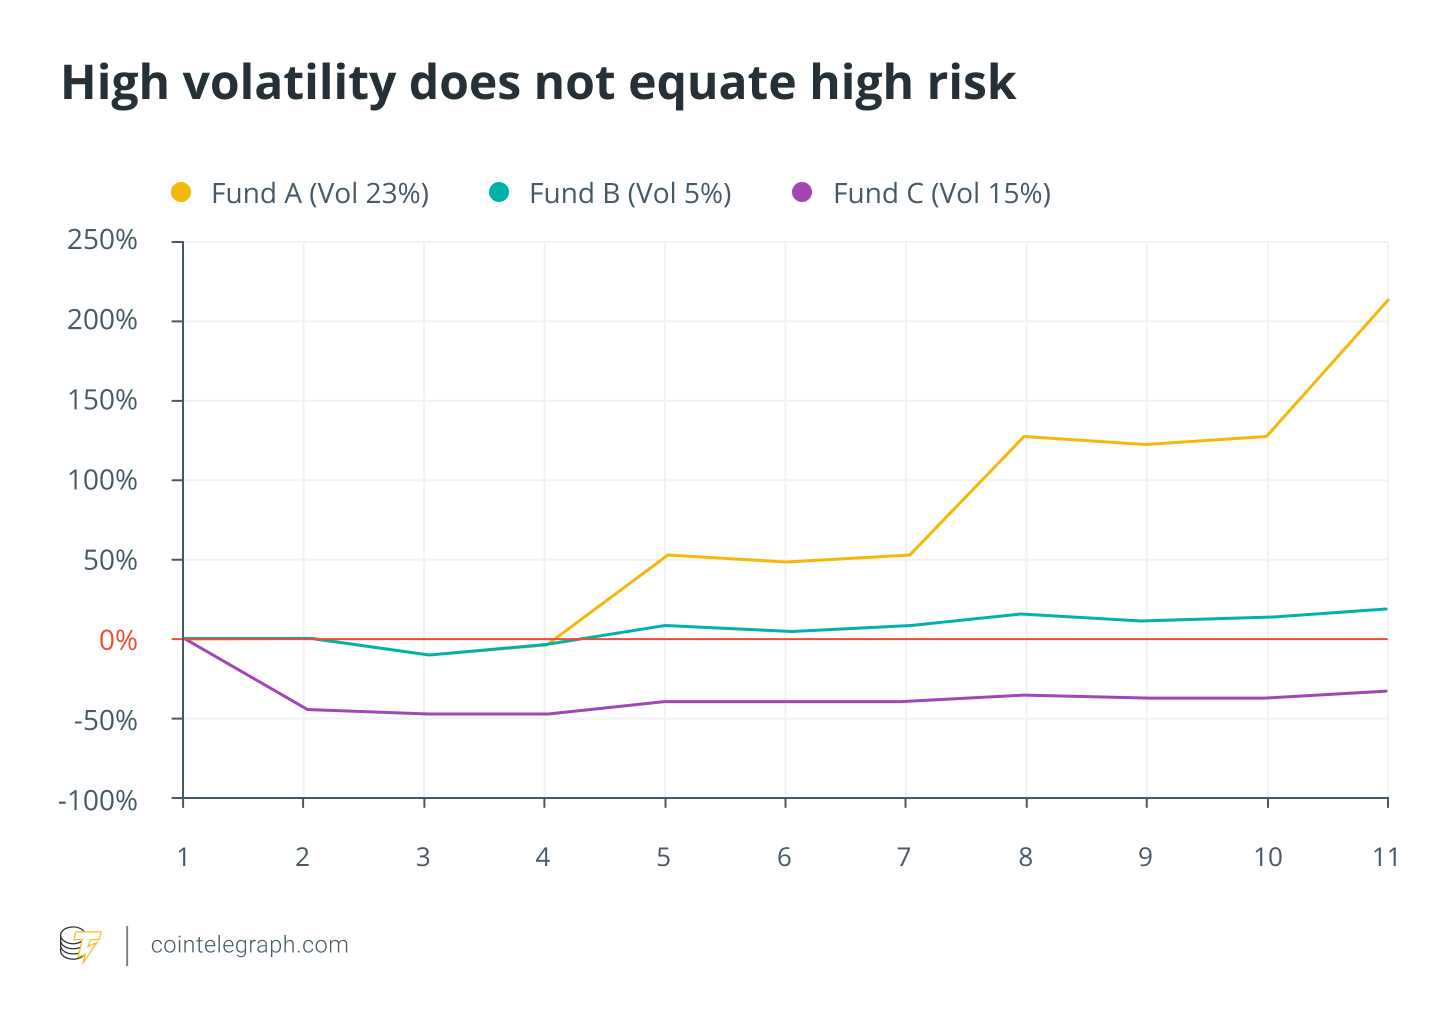 High volatility does not equate high risk